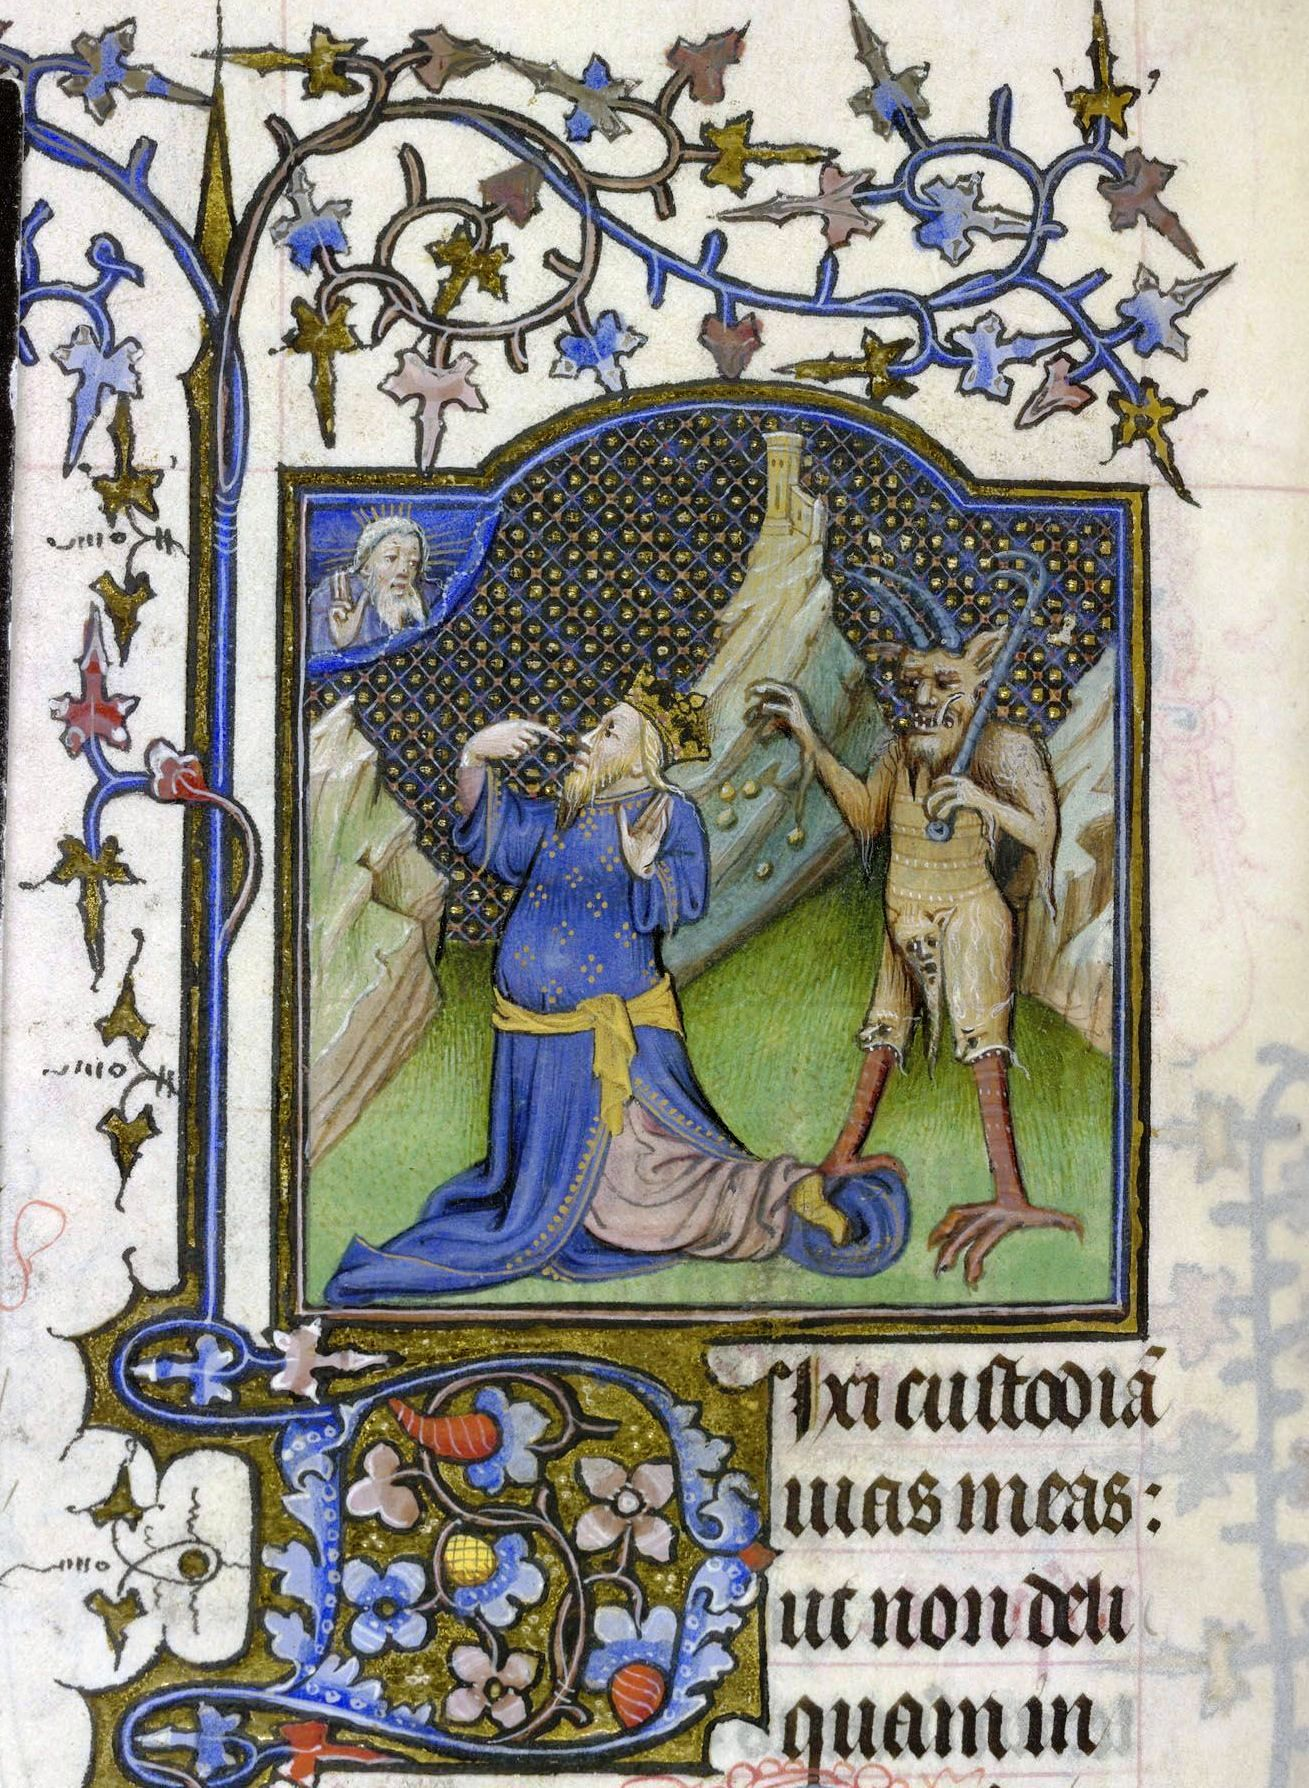 Call for Papers: Beasts, Humans, and Transhumans in the Middle Ages and Renaissance